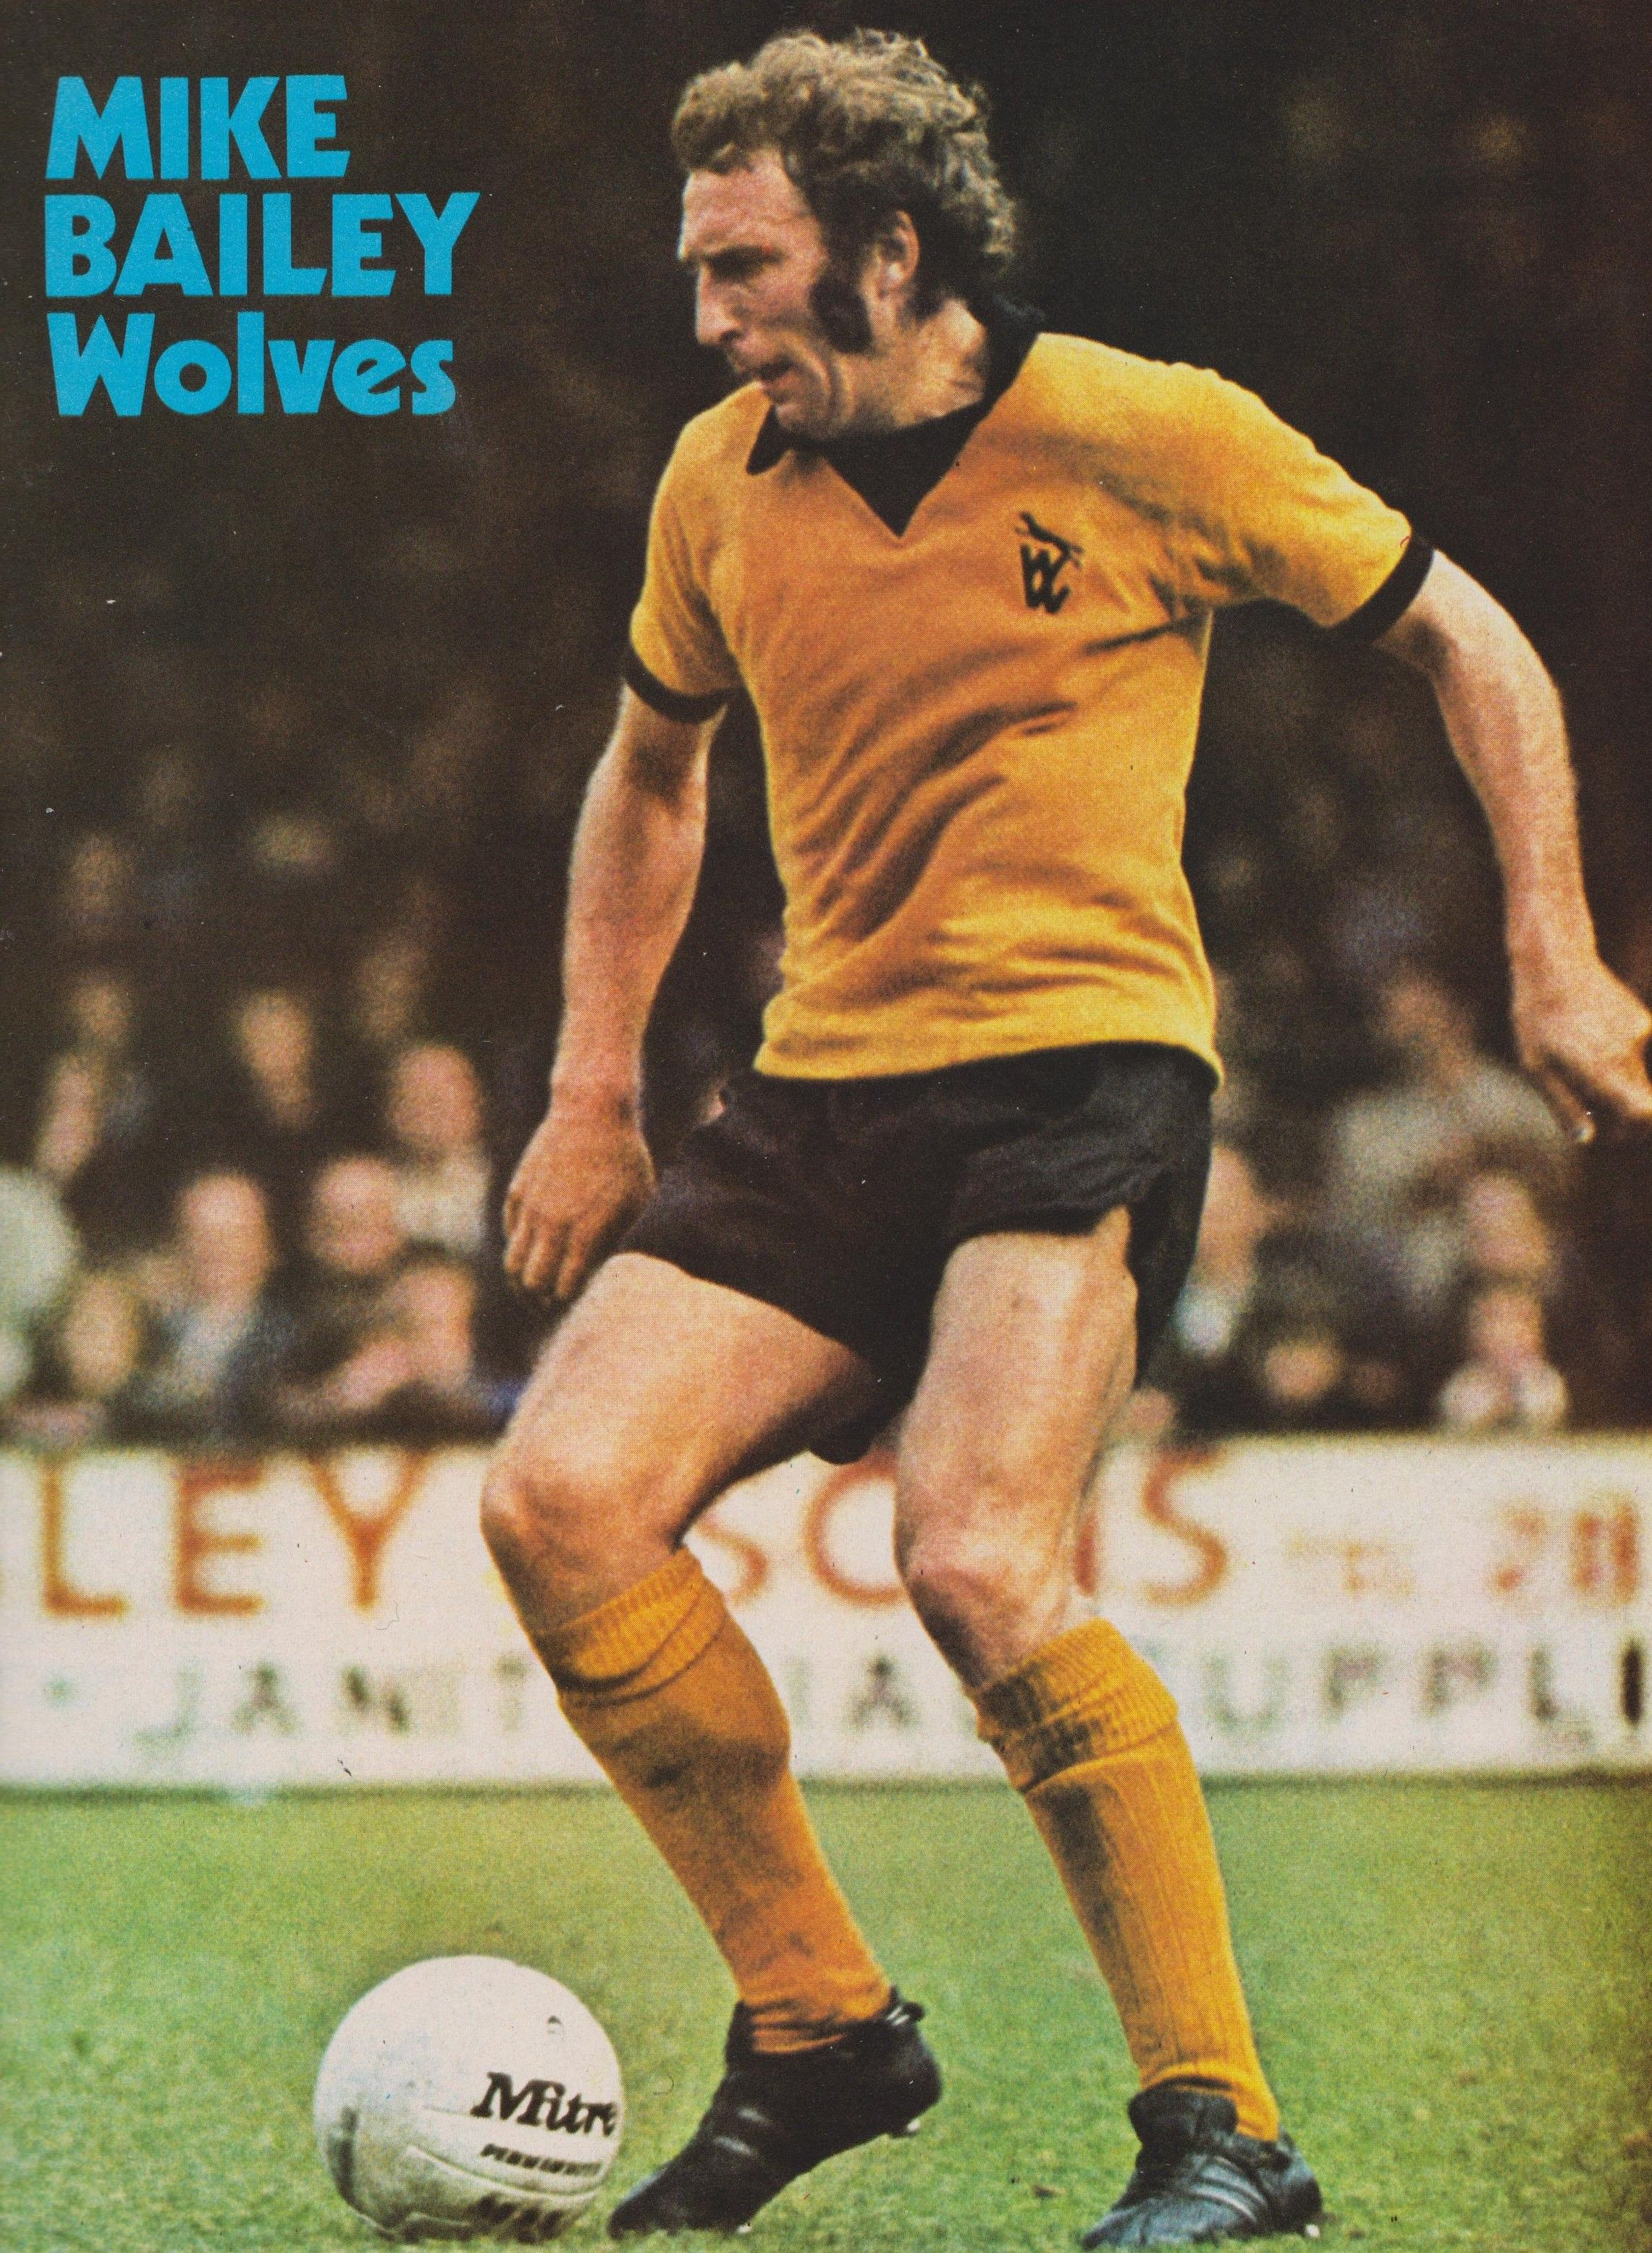 Mike Bailey Wolves 1973   Mike bailey, Wolf, Football